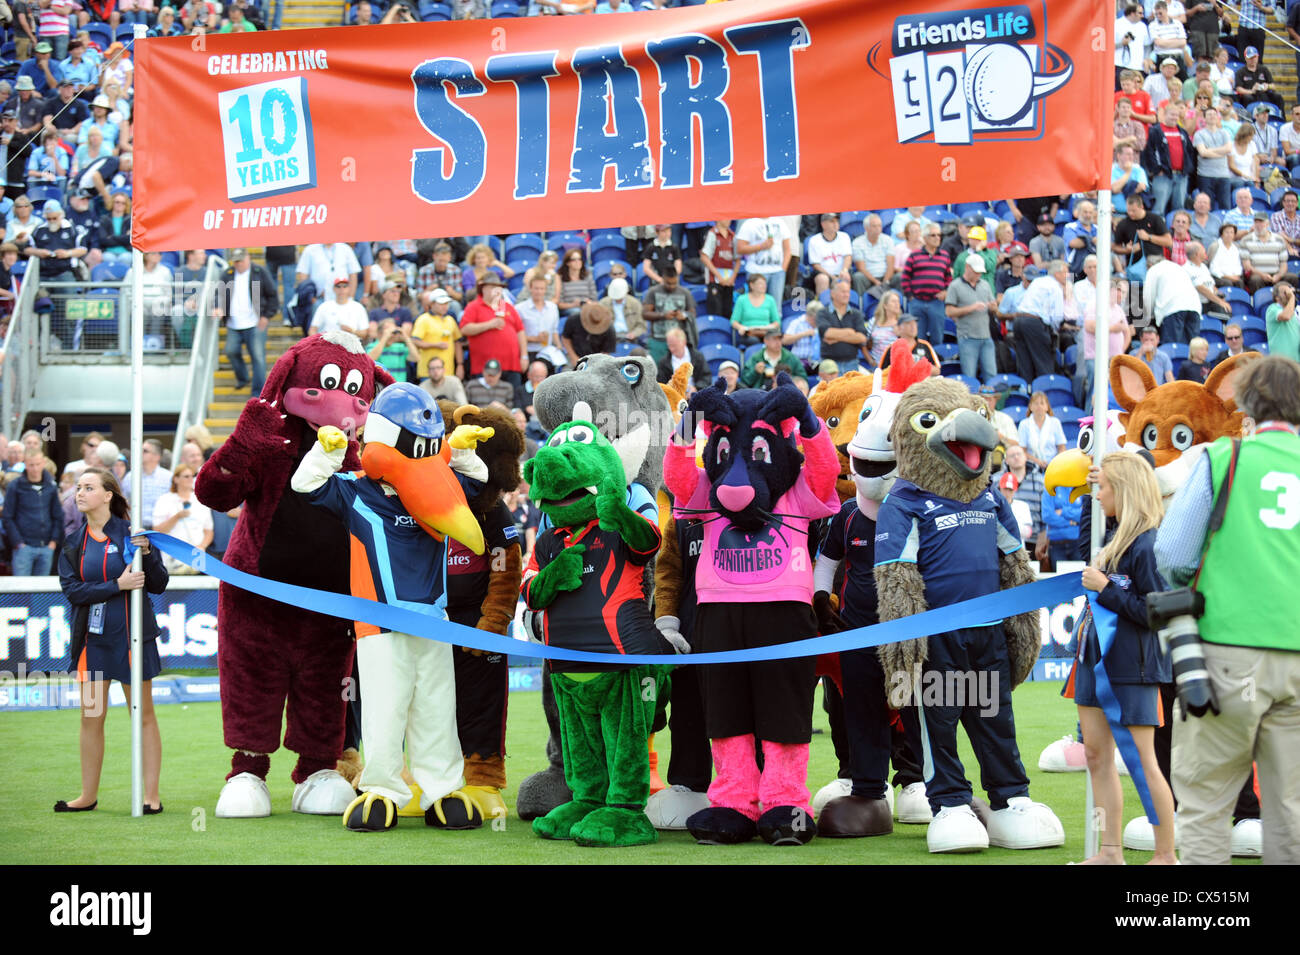 Action from the famous Mascot race from the 2012 Twenty20 Finals Day at the Swalec Stadium in Cardiff. - Stock Image